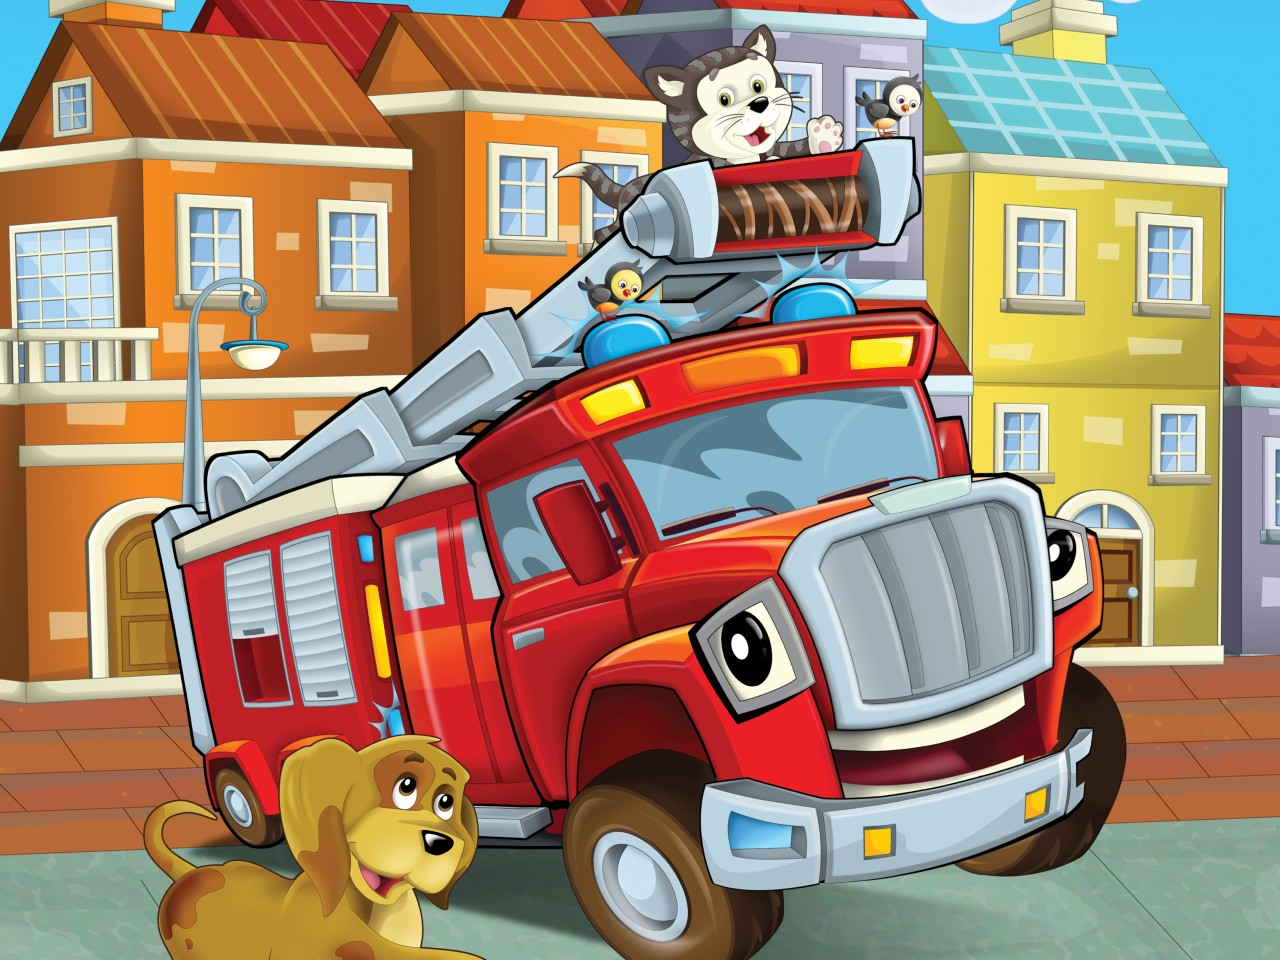 Fire Safety Activities for Kids: Printables, Books & Skills to Teach